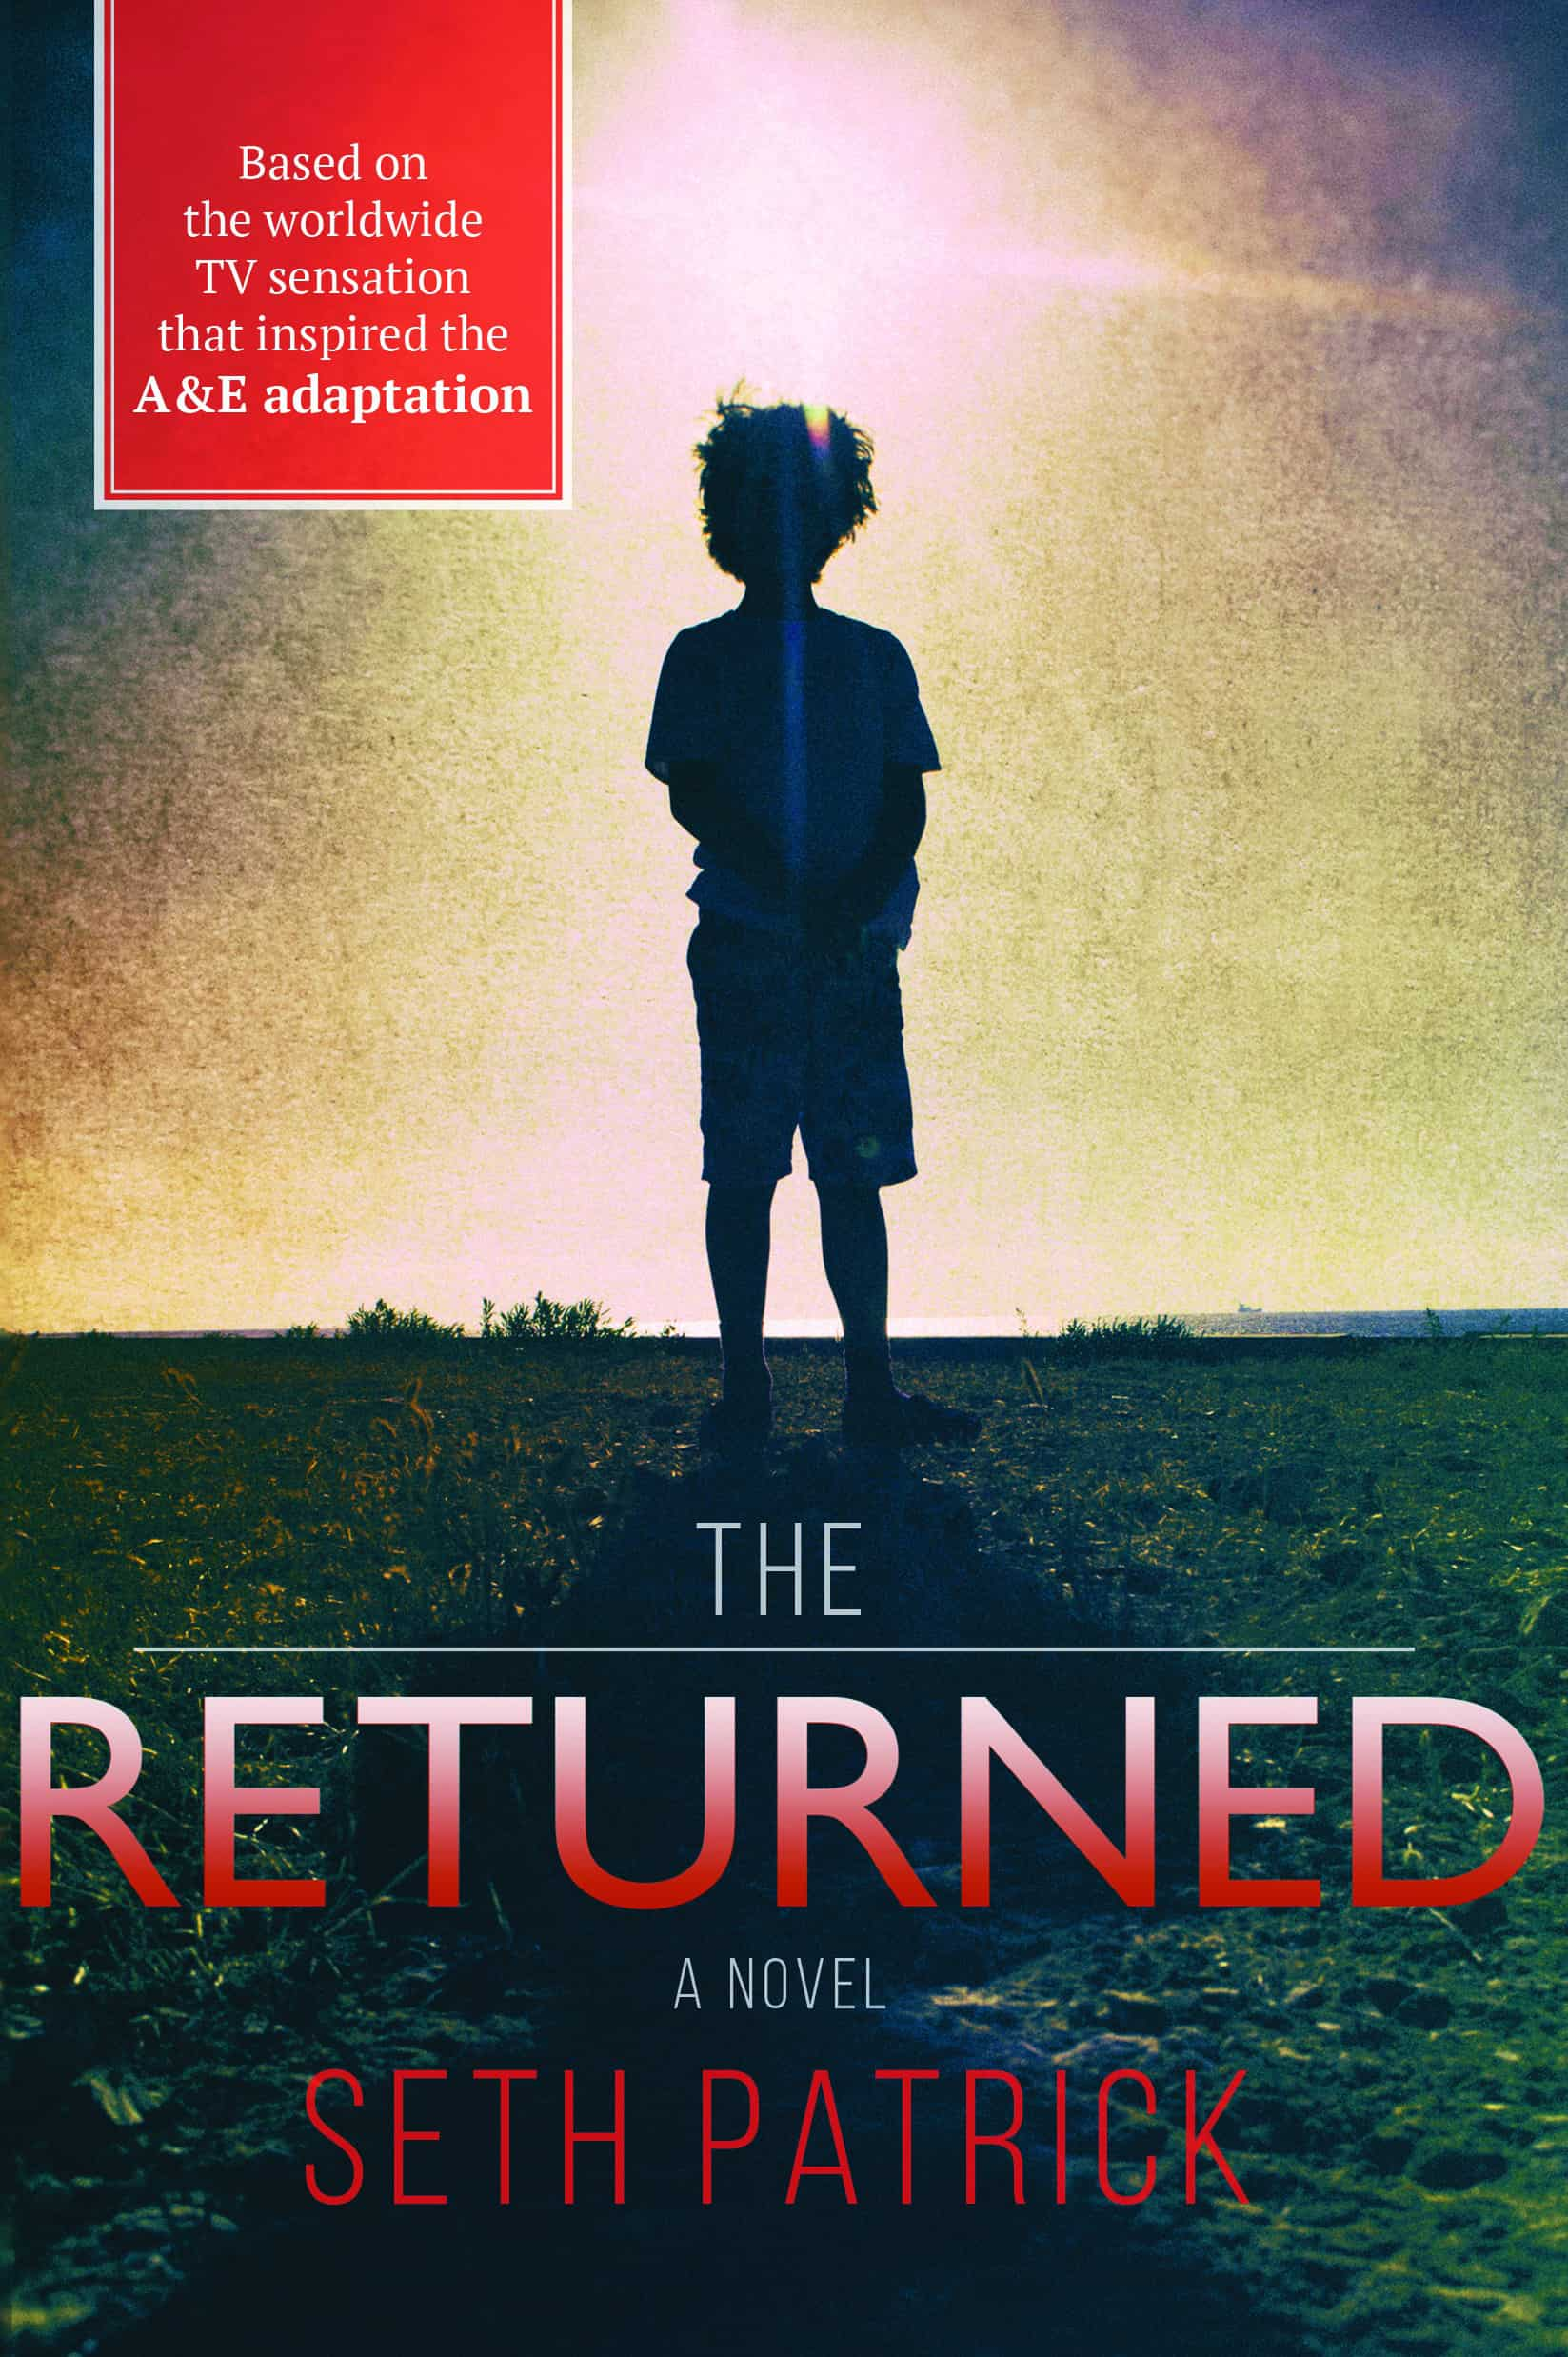 9781492623373 300 - Sourcebooks Acquires US Rights to Seth Patrick's The Returned: A Novel